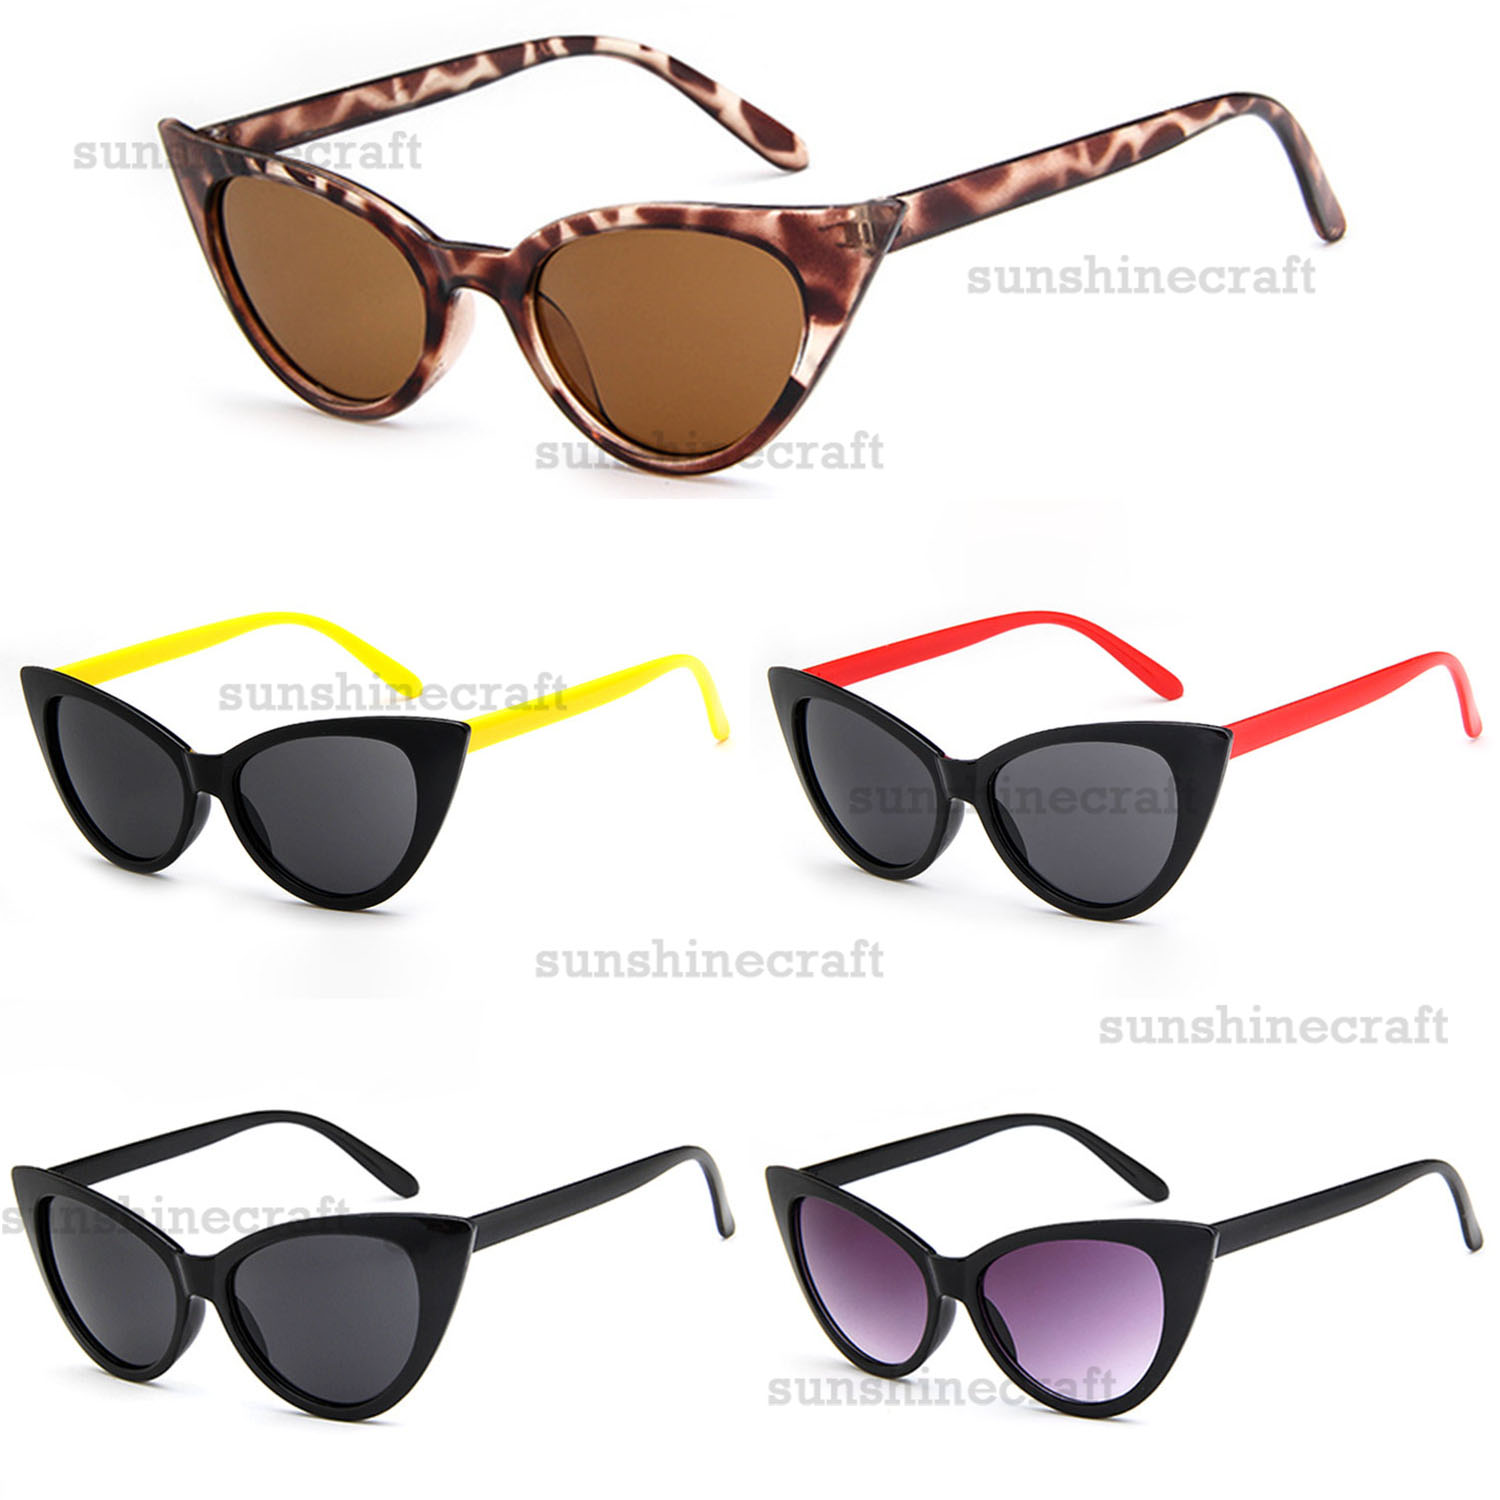 0cf241bff55 Details about New Arrival 5 Colors Lady Women Stylish Sunglasses 100% UV  Protection AU014 b